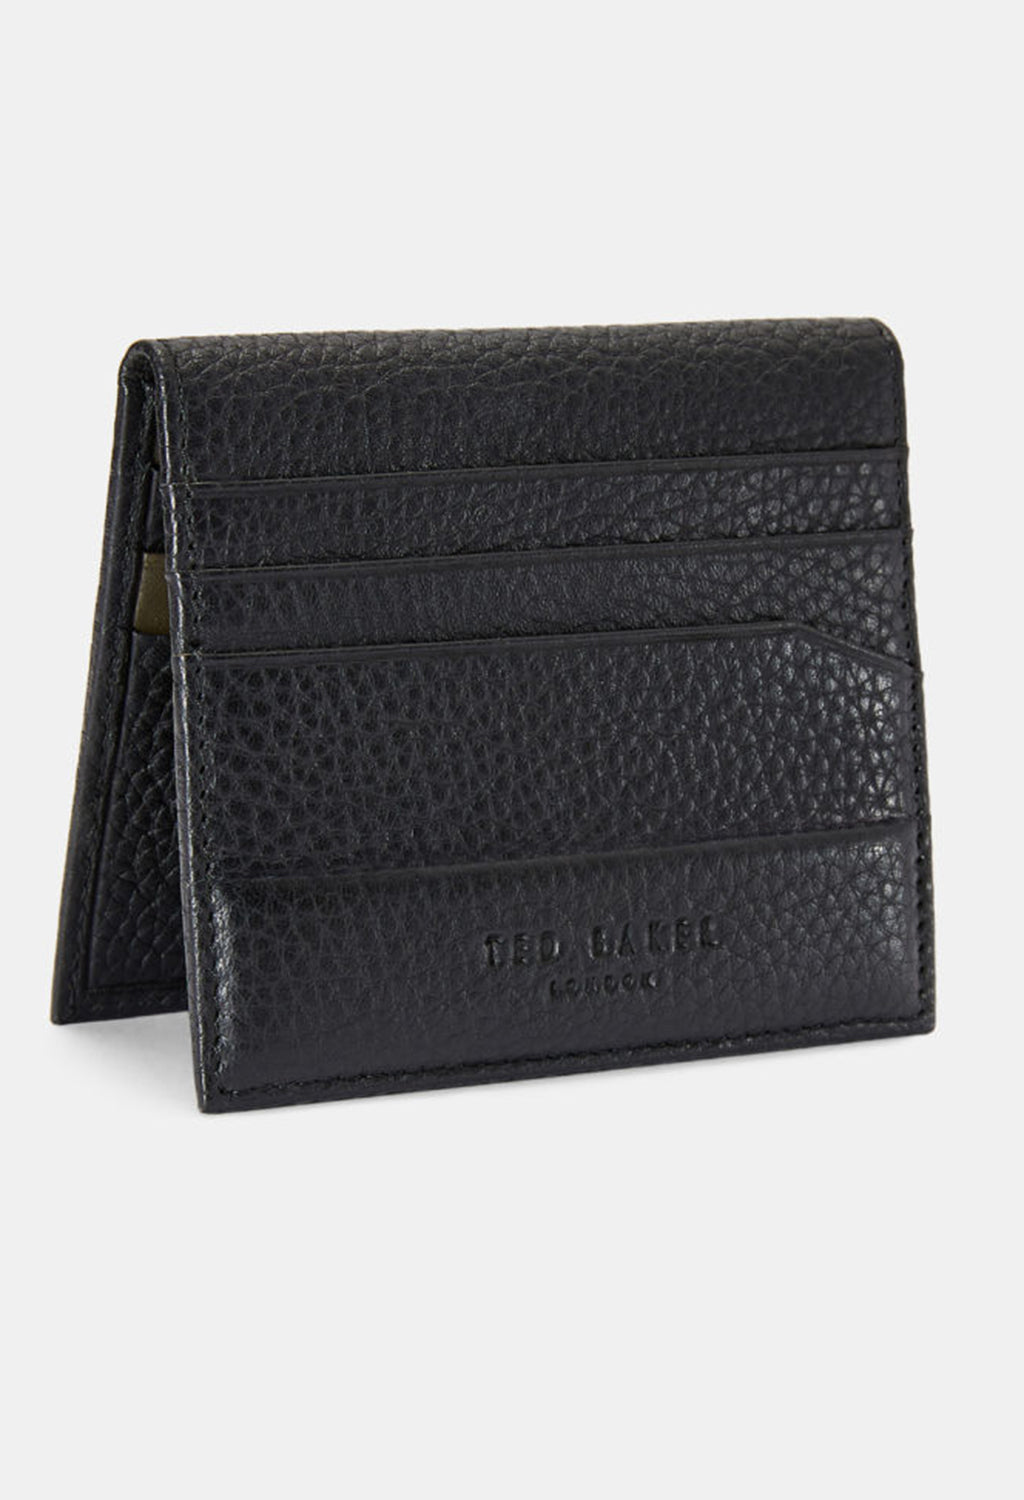 Ted Baker Leather Bifold Cardholder